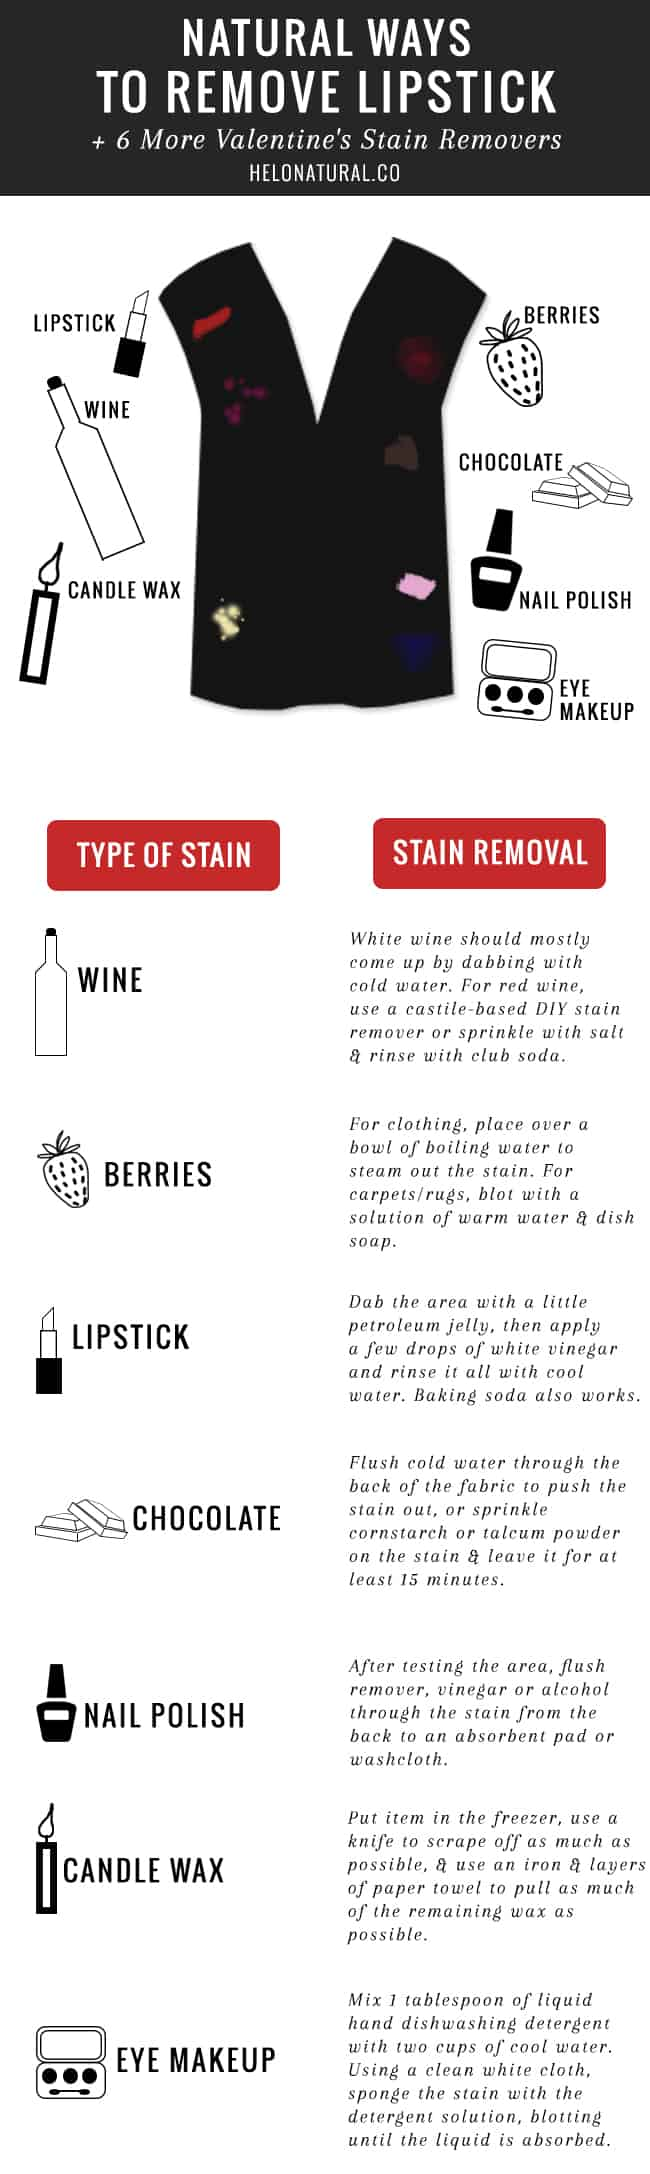 Natural Ways to Remove Lipstick + 6 More Valentine's Stain Removers